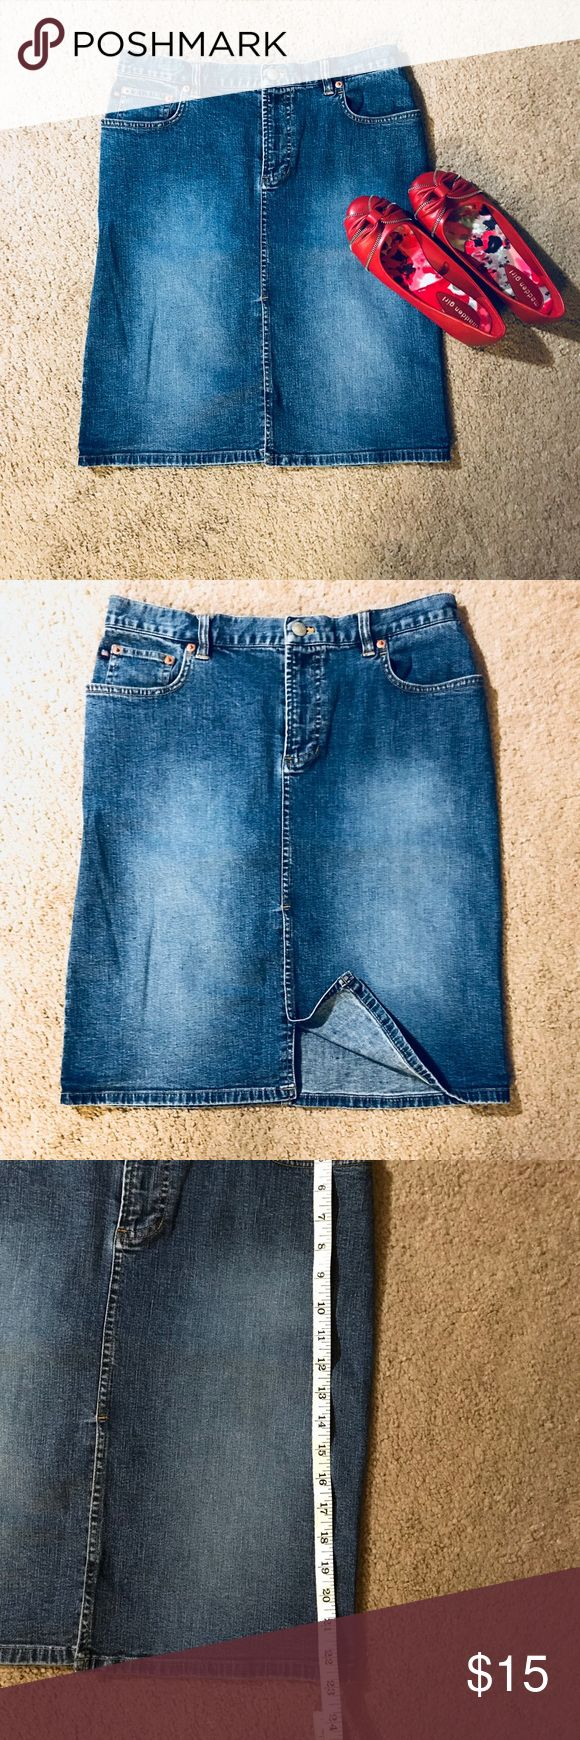 Denim skirt Stone wash denim skirt. Pre-loved. Can be paired with boots or flats. 98% cotton and 2% Lycra spandex. It's form fitting and has a little slit in the middle that was sowed together. Please feel free to ask any questions. Ralph Lauren Skirts